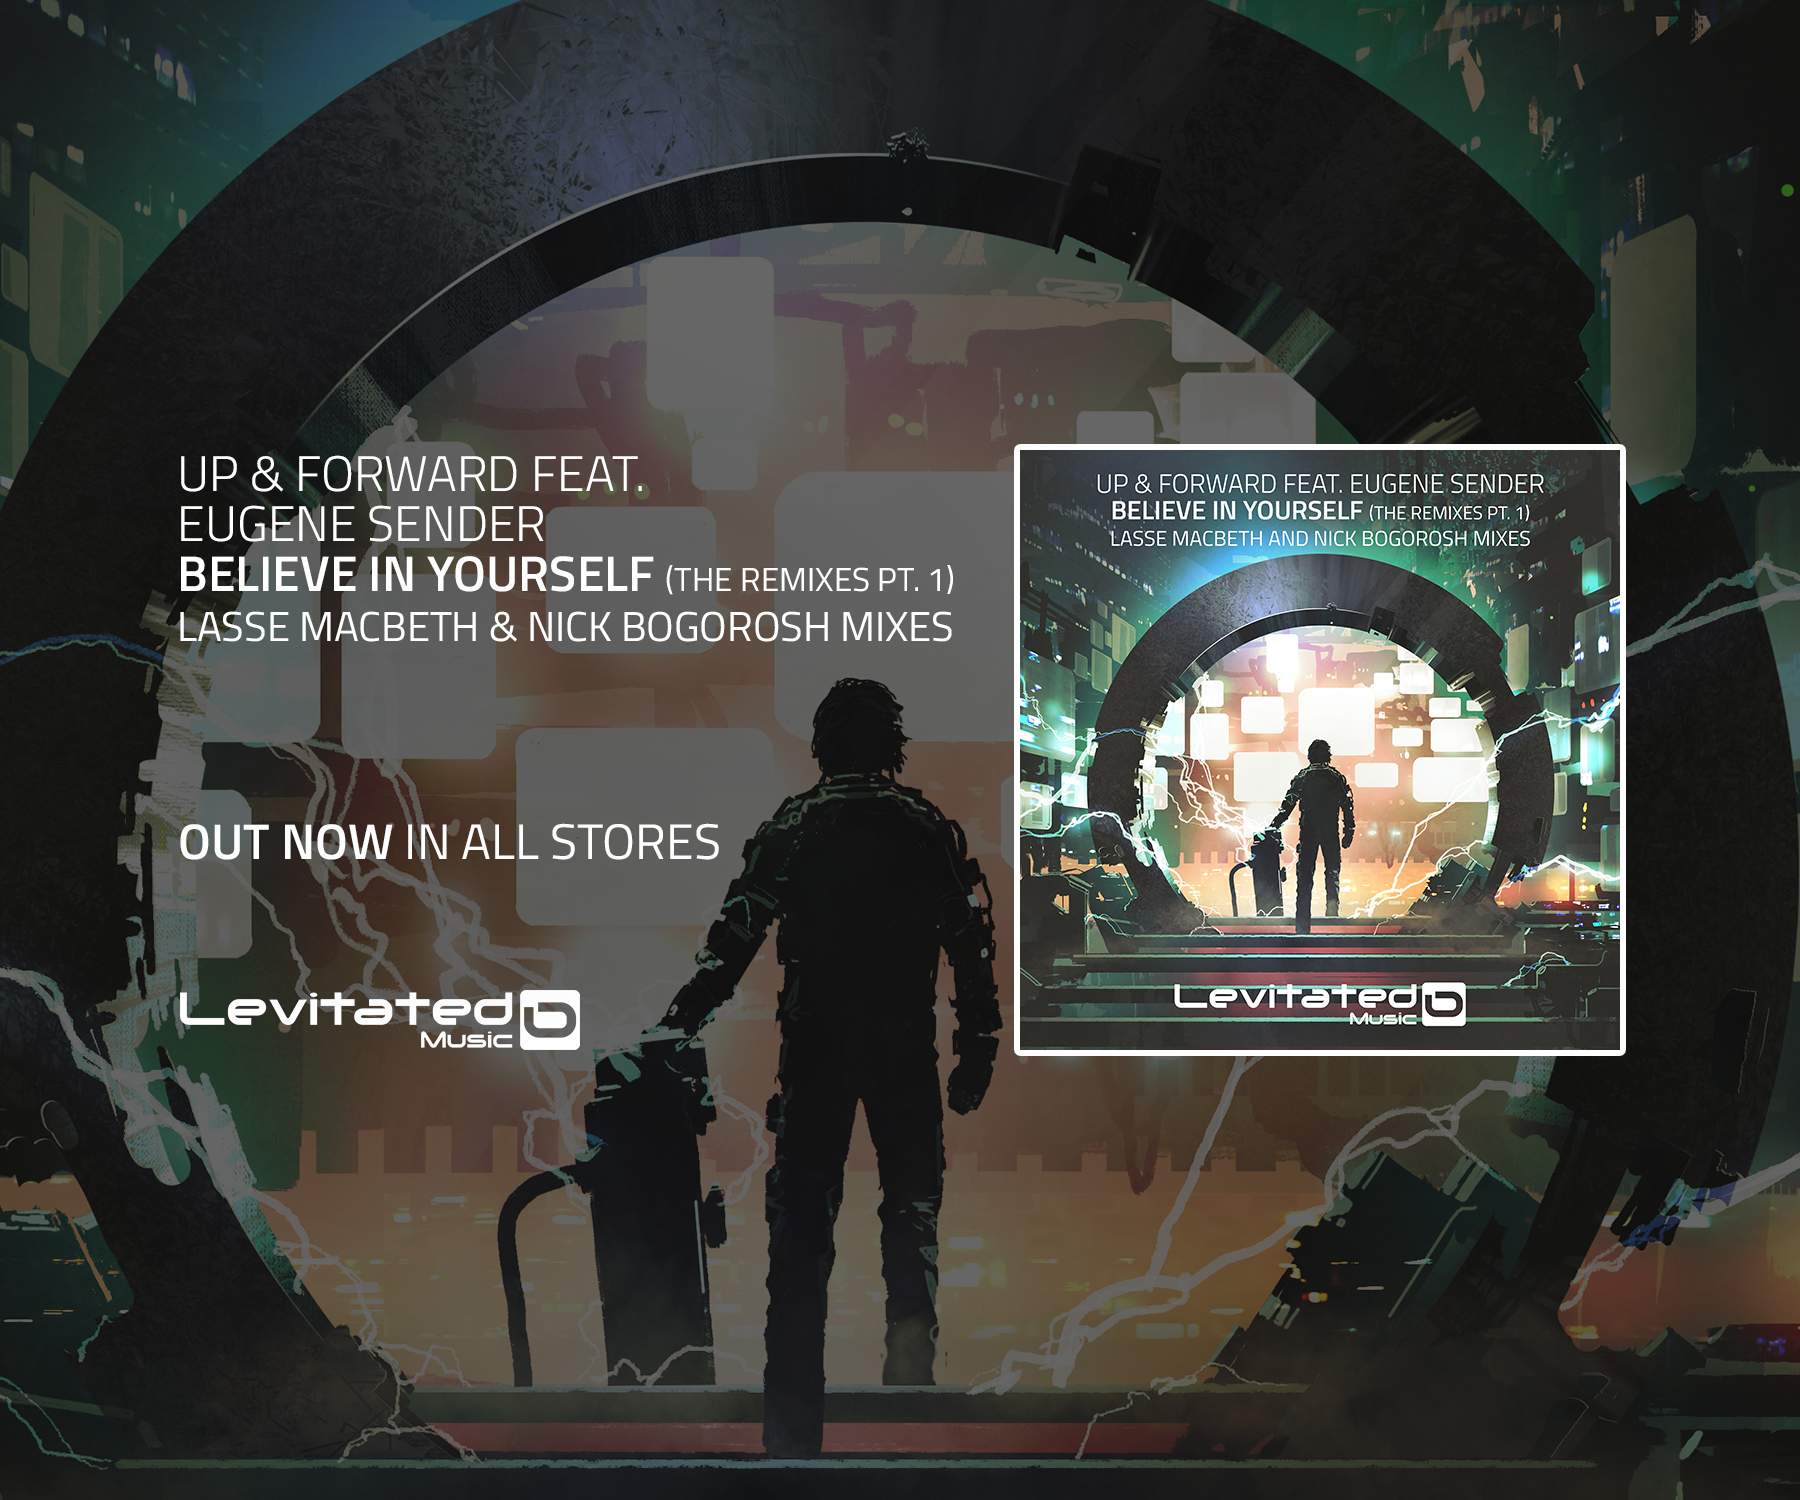 LEV131 OUT PROMO IMG